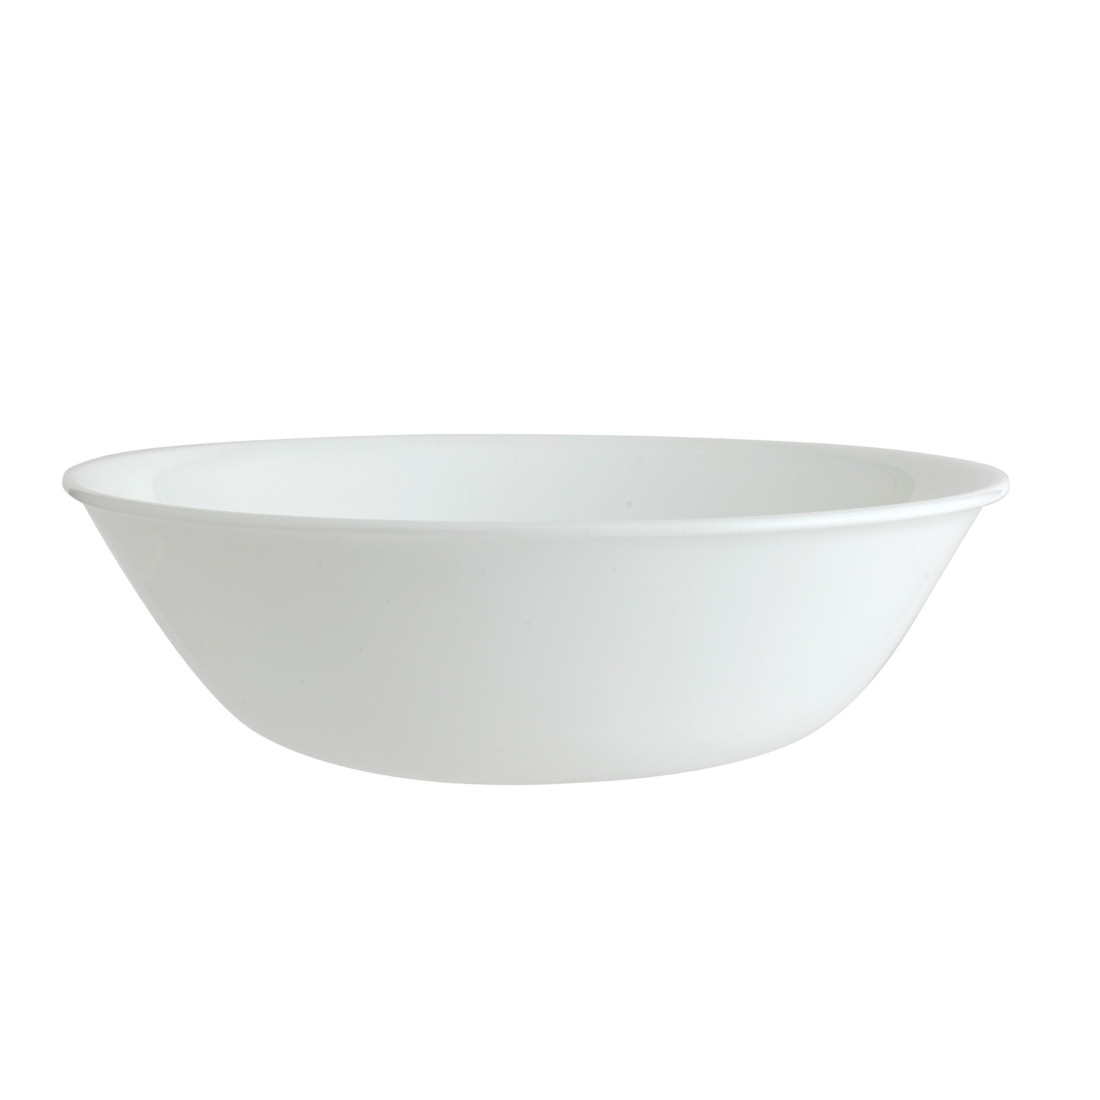 Corelle Winter Frost White Serving Bowl Vitrelle Serving Bowls in White Colour by Corelle